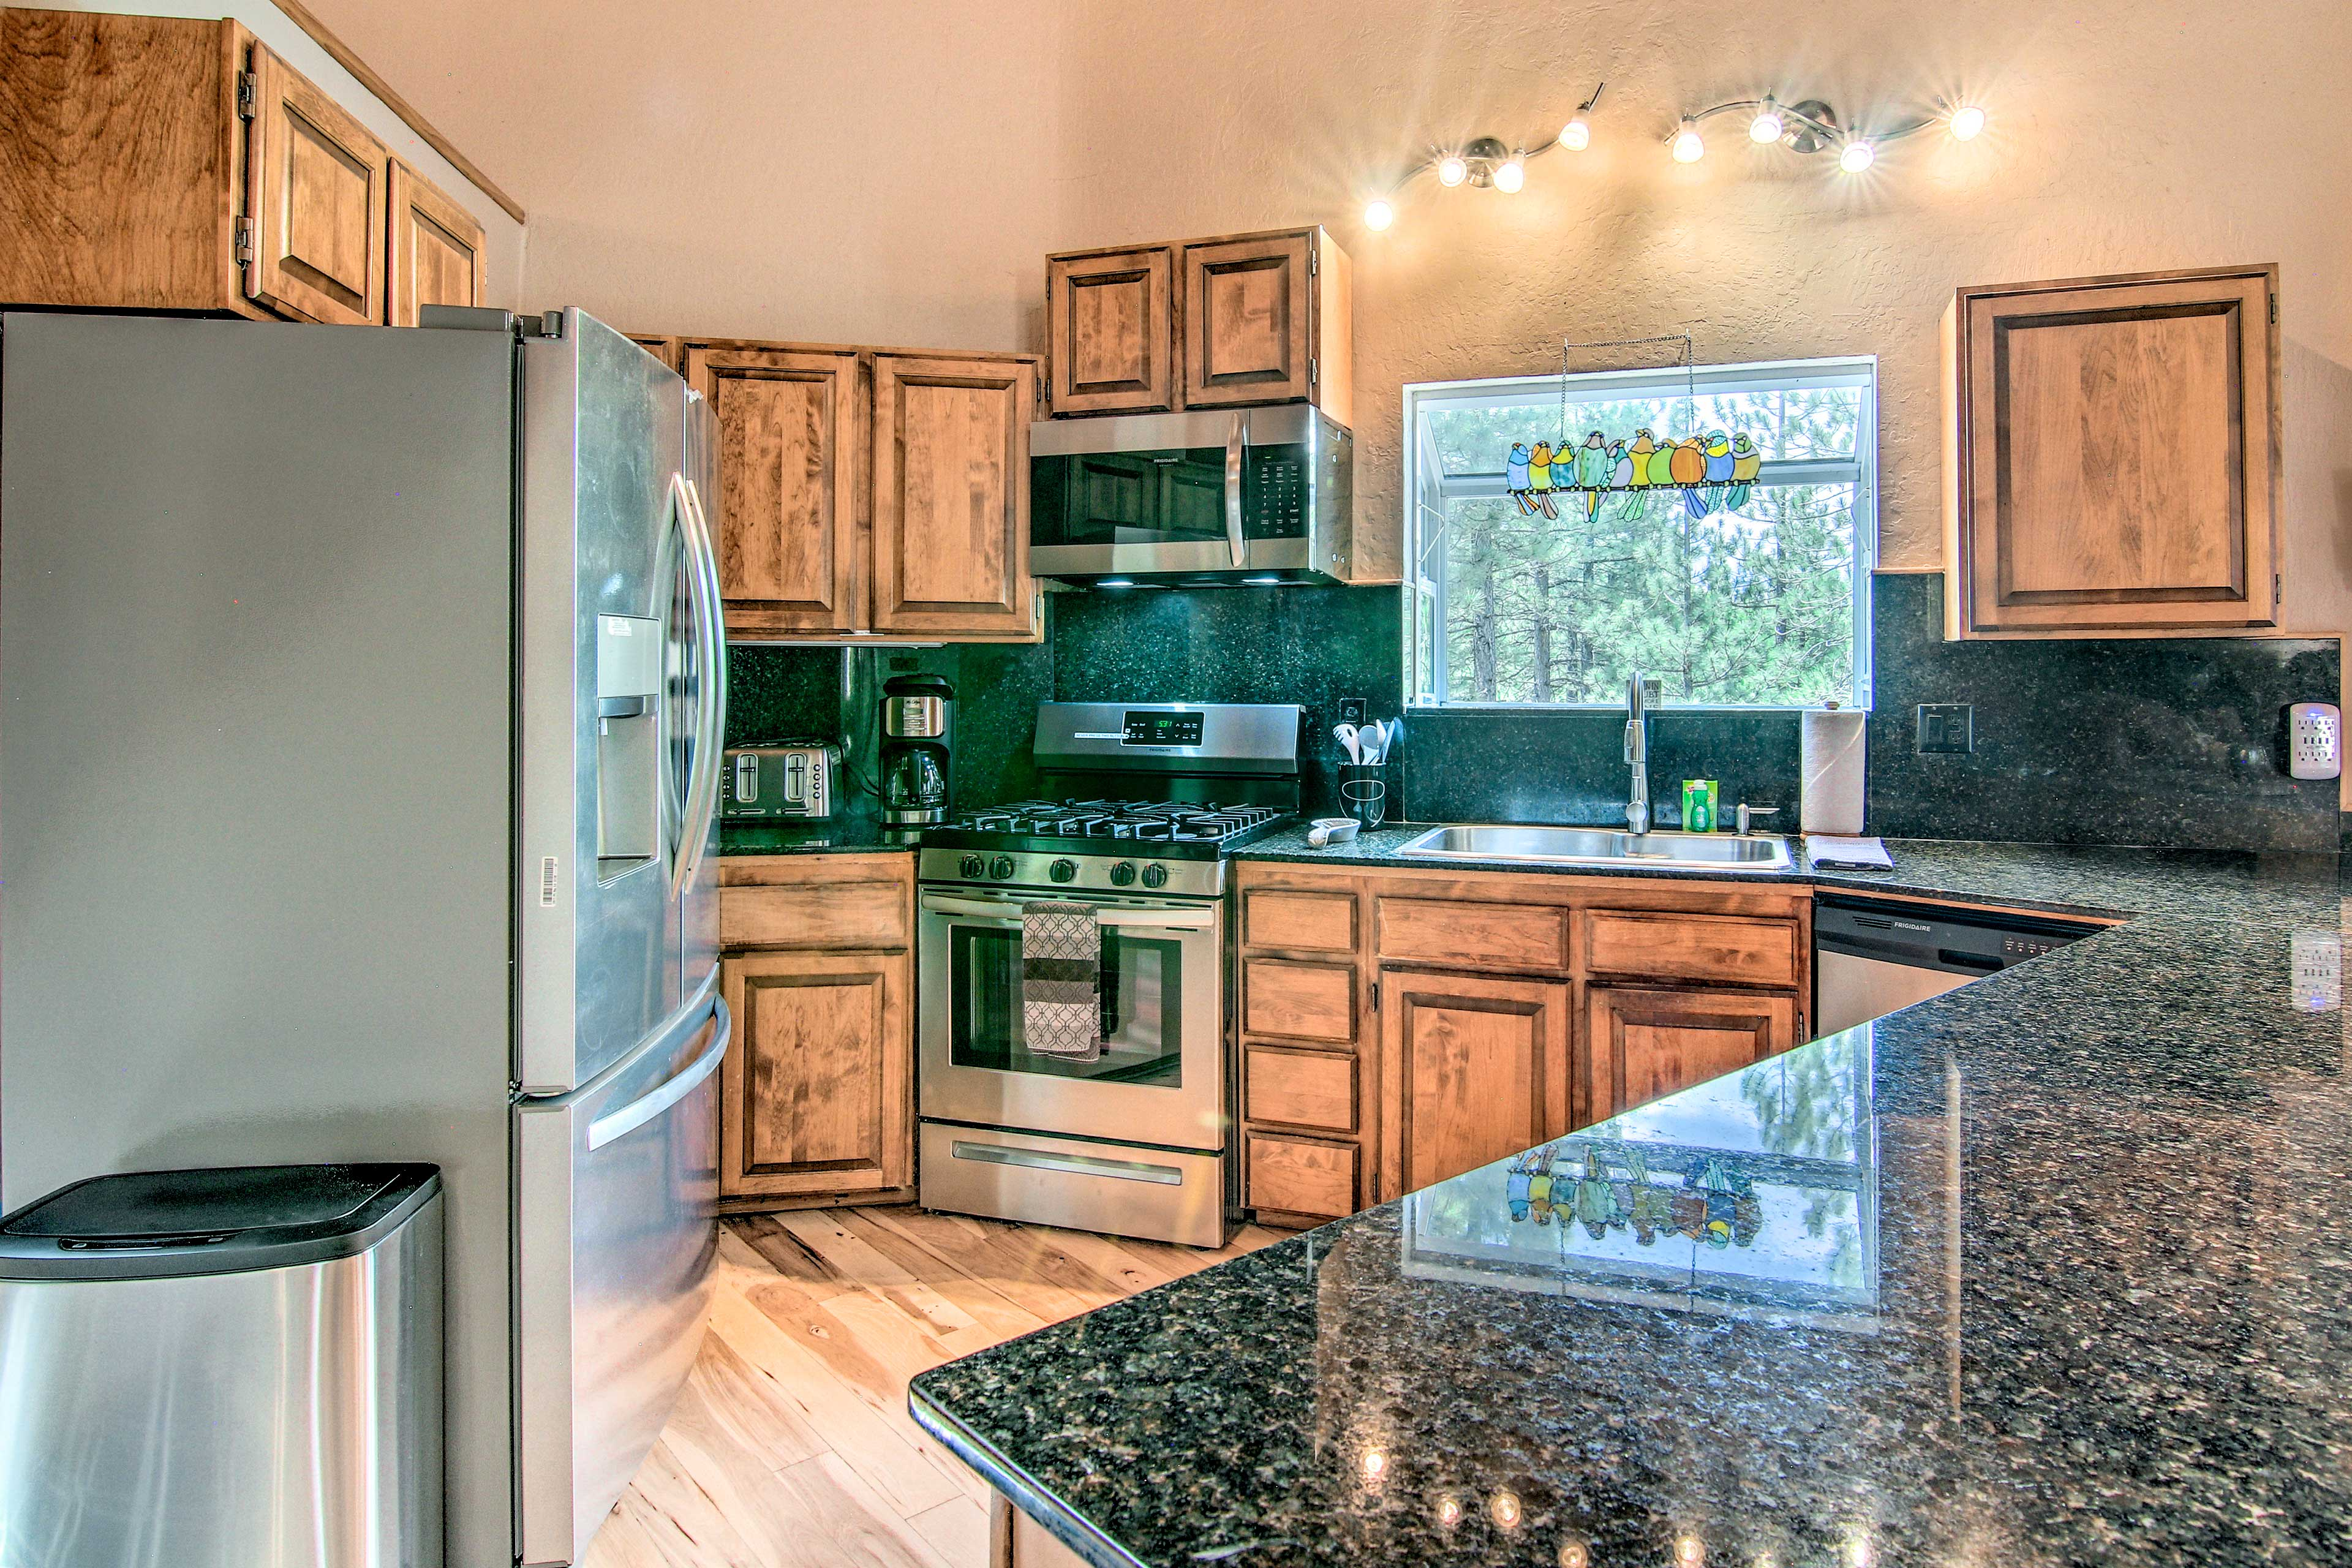 Get cooking in the kitchen complete with stainless steel appliances.